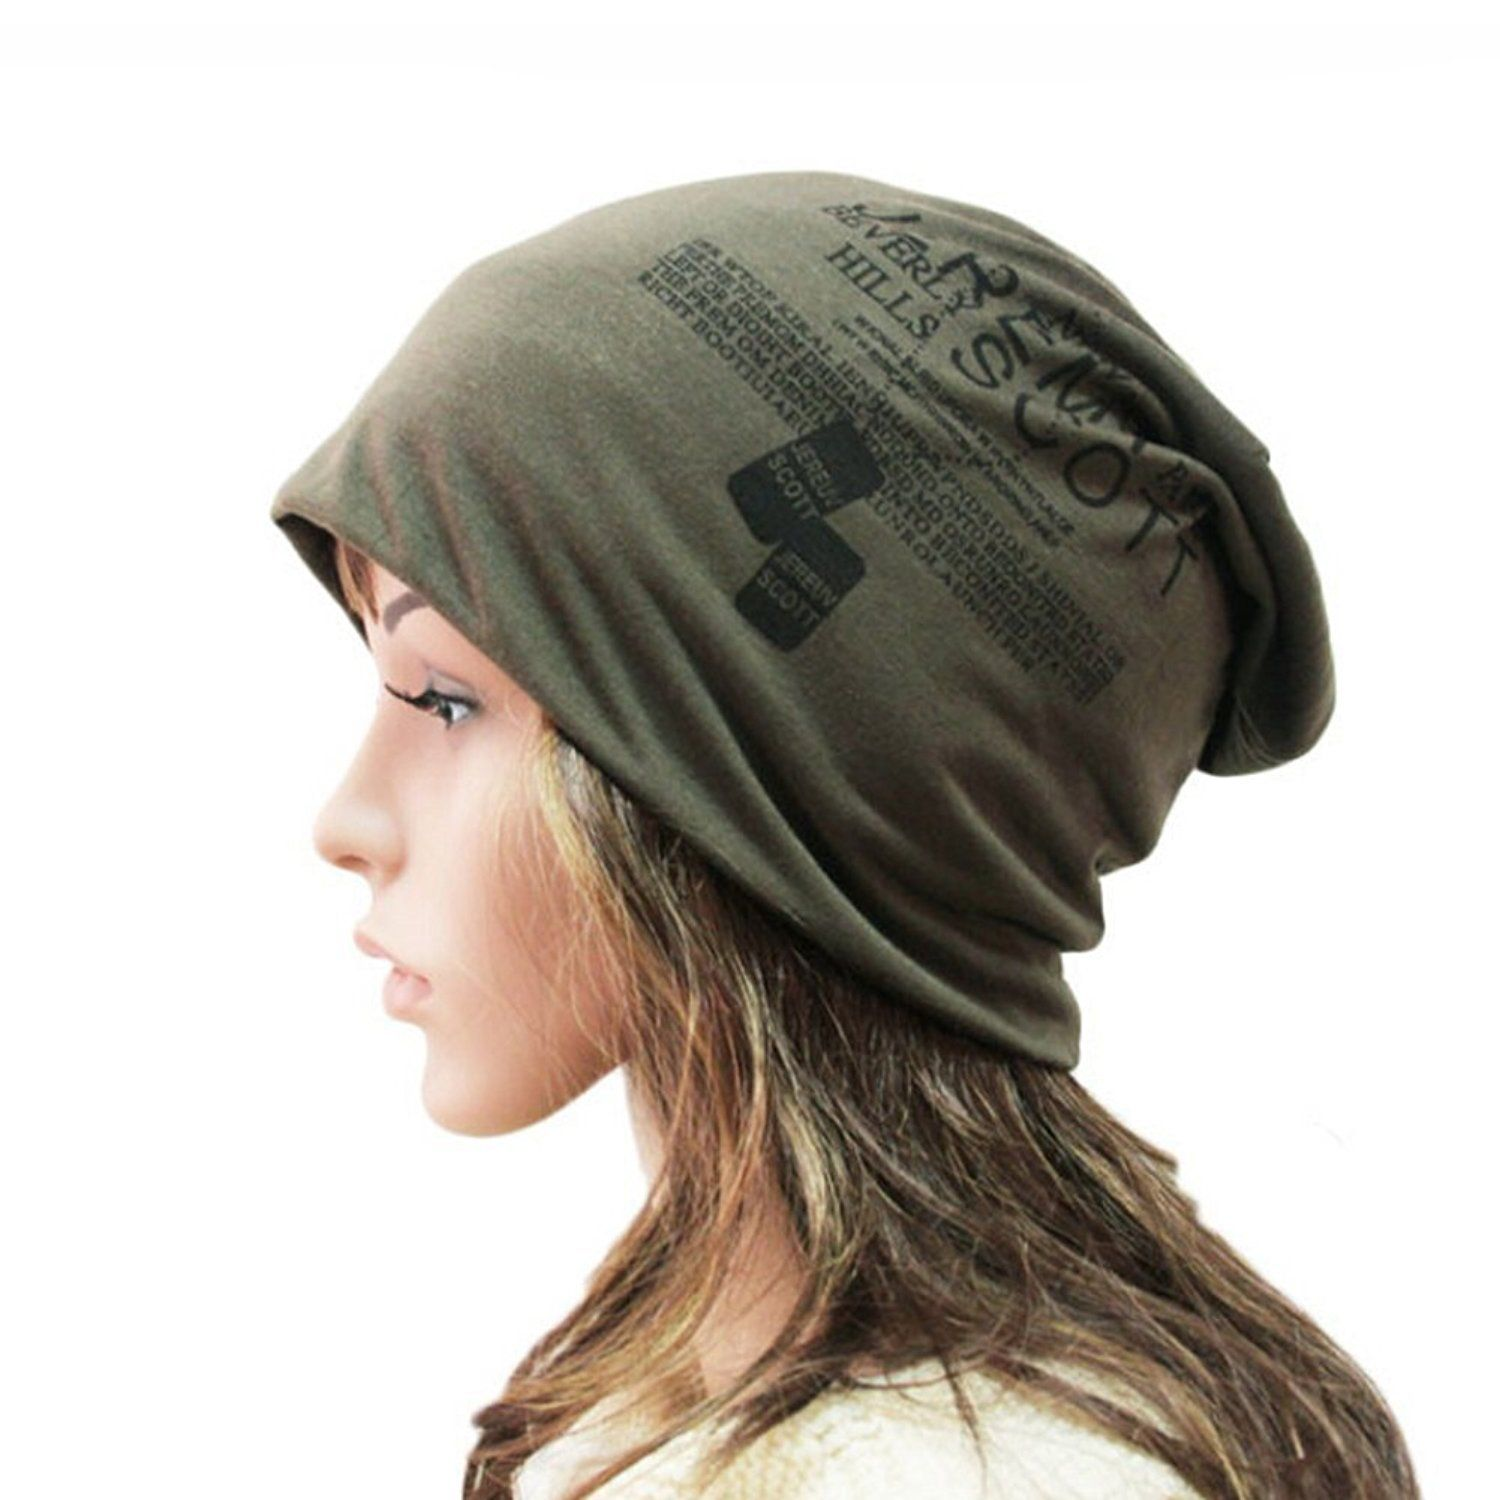 fb03d5eaf7b Butterme Unisex Stylish Hip-Hop Hiphop Fashion Cap Cotton Knitted Slouchy Beanie  Hat Warm Soft Stretch Winter Slouch Army Green  Amazon.co.uk  Clothing